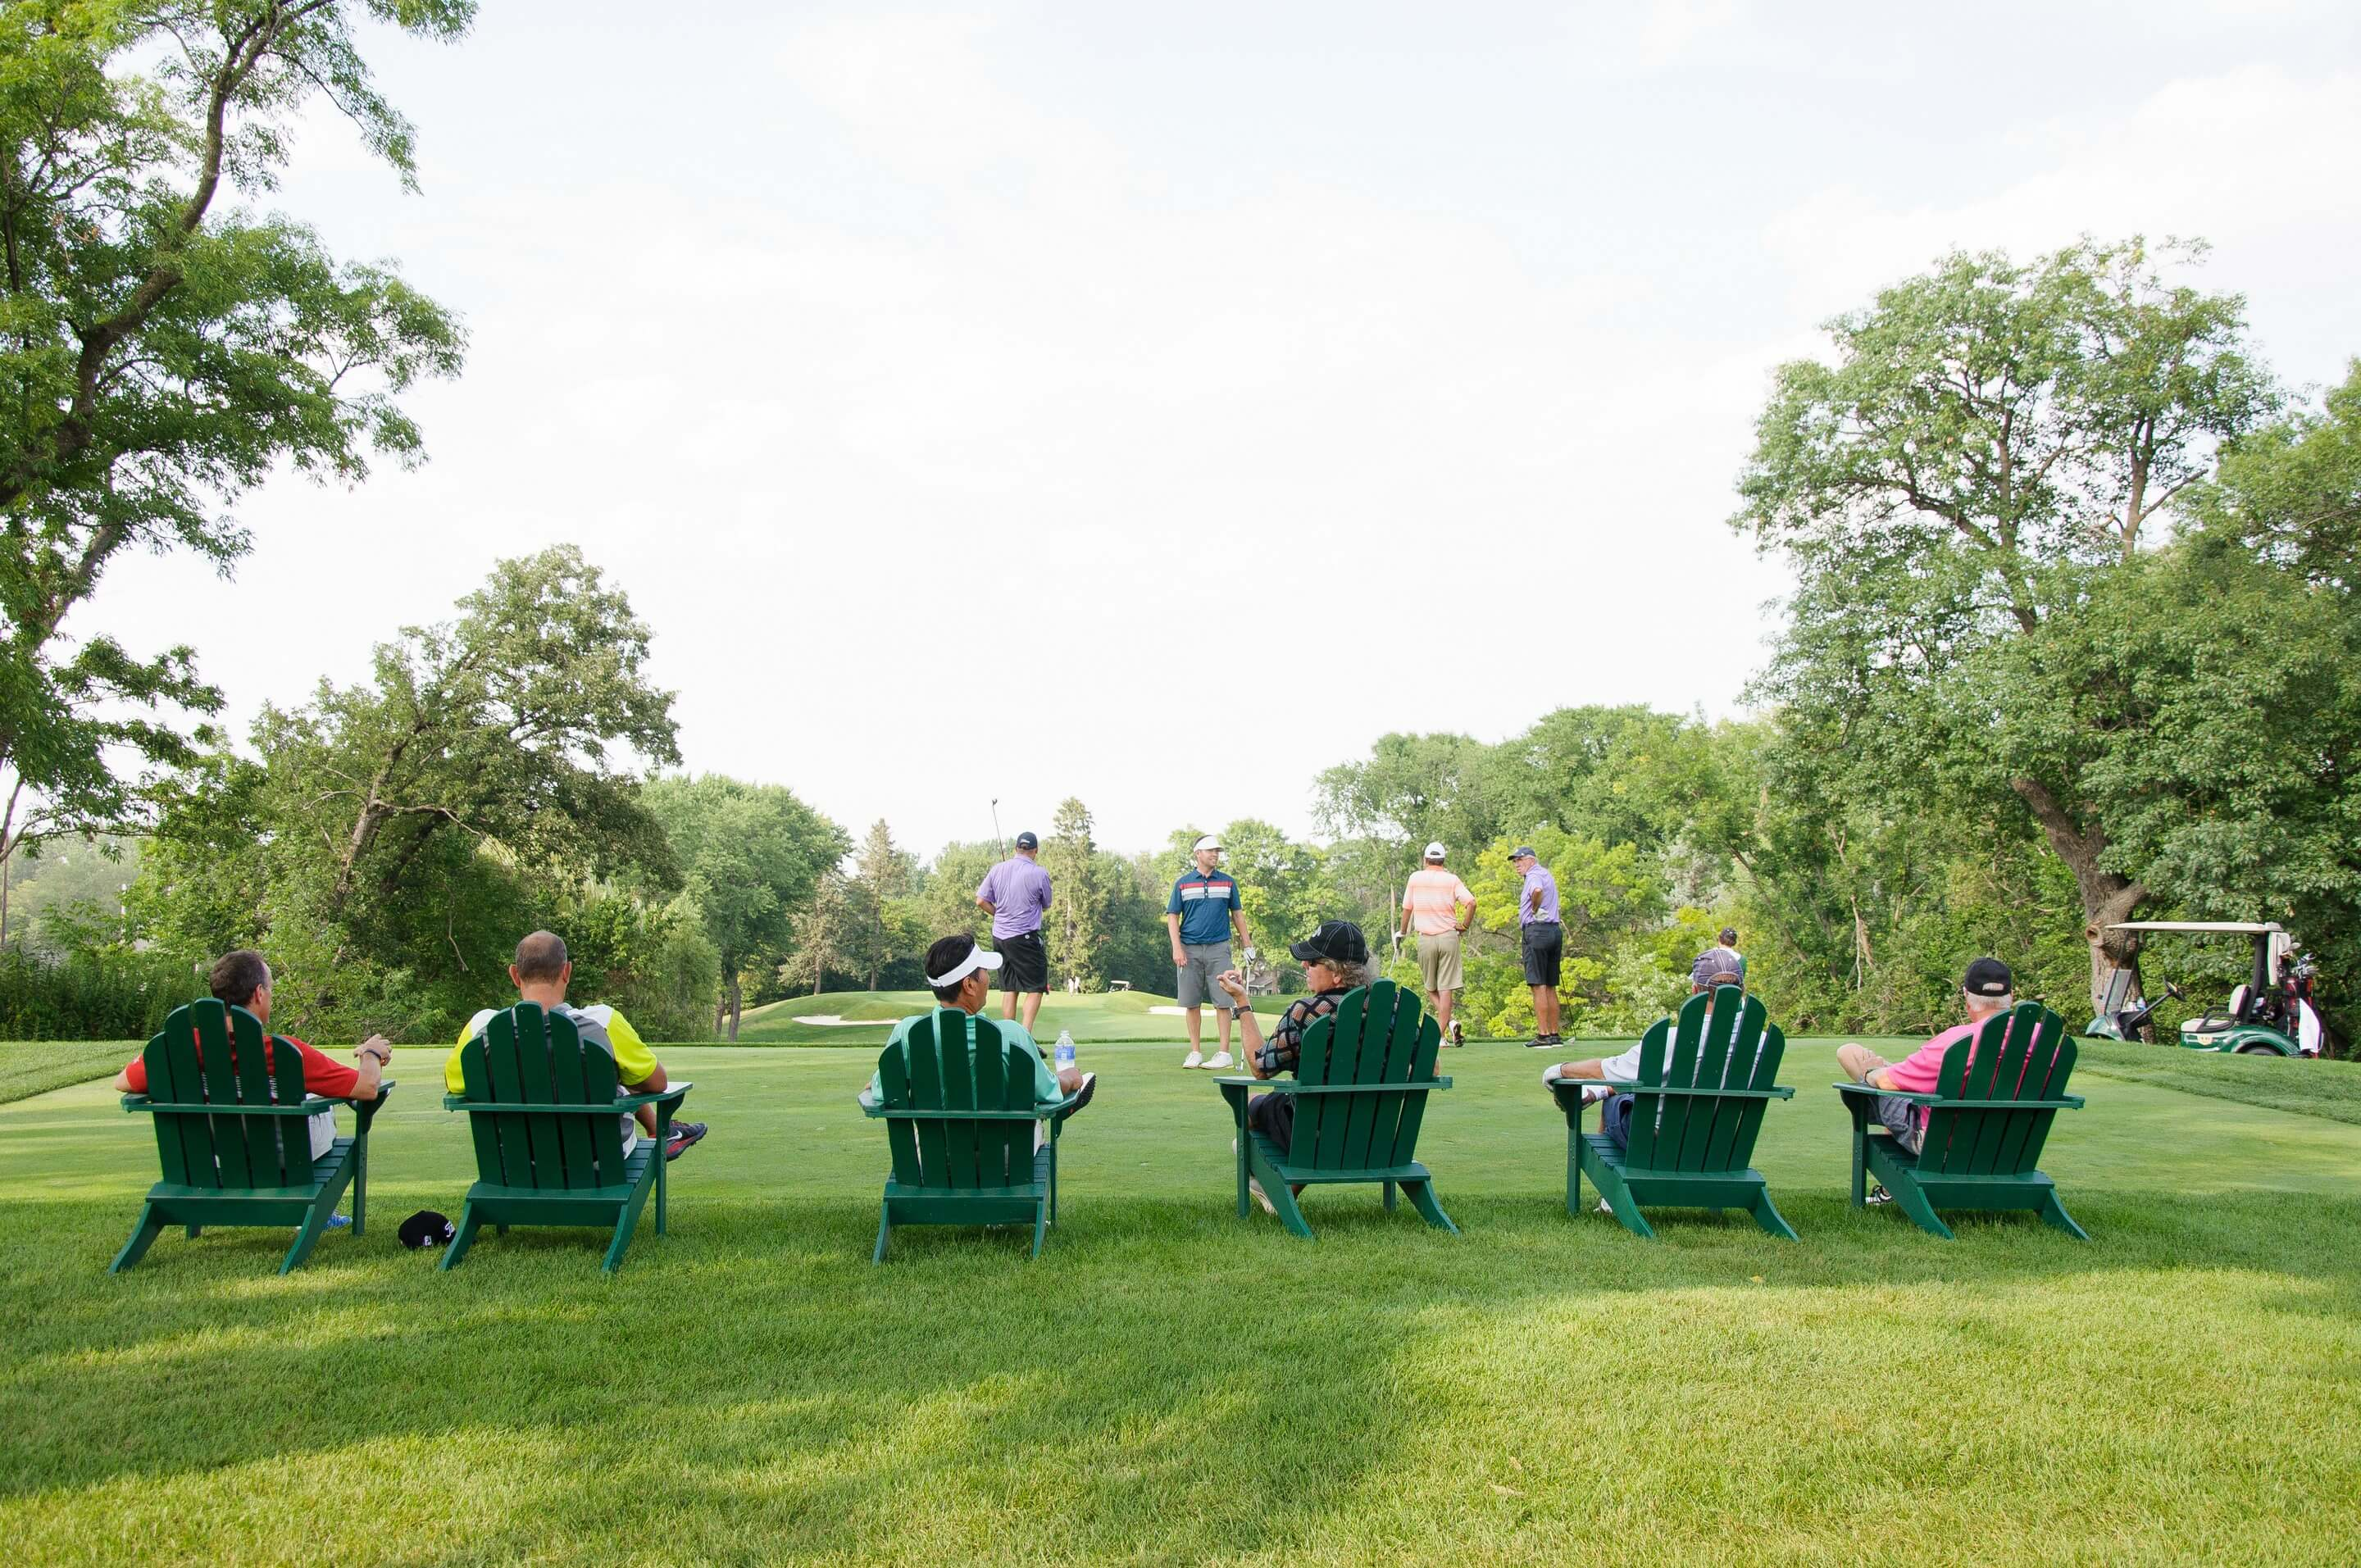 Golfers in chairs watching golf event